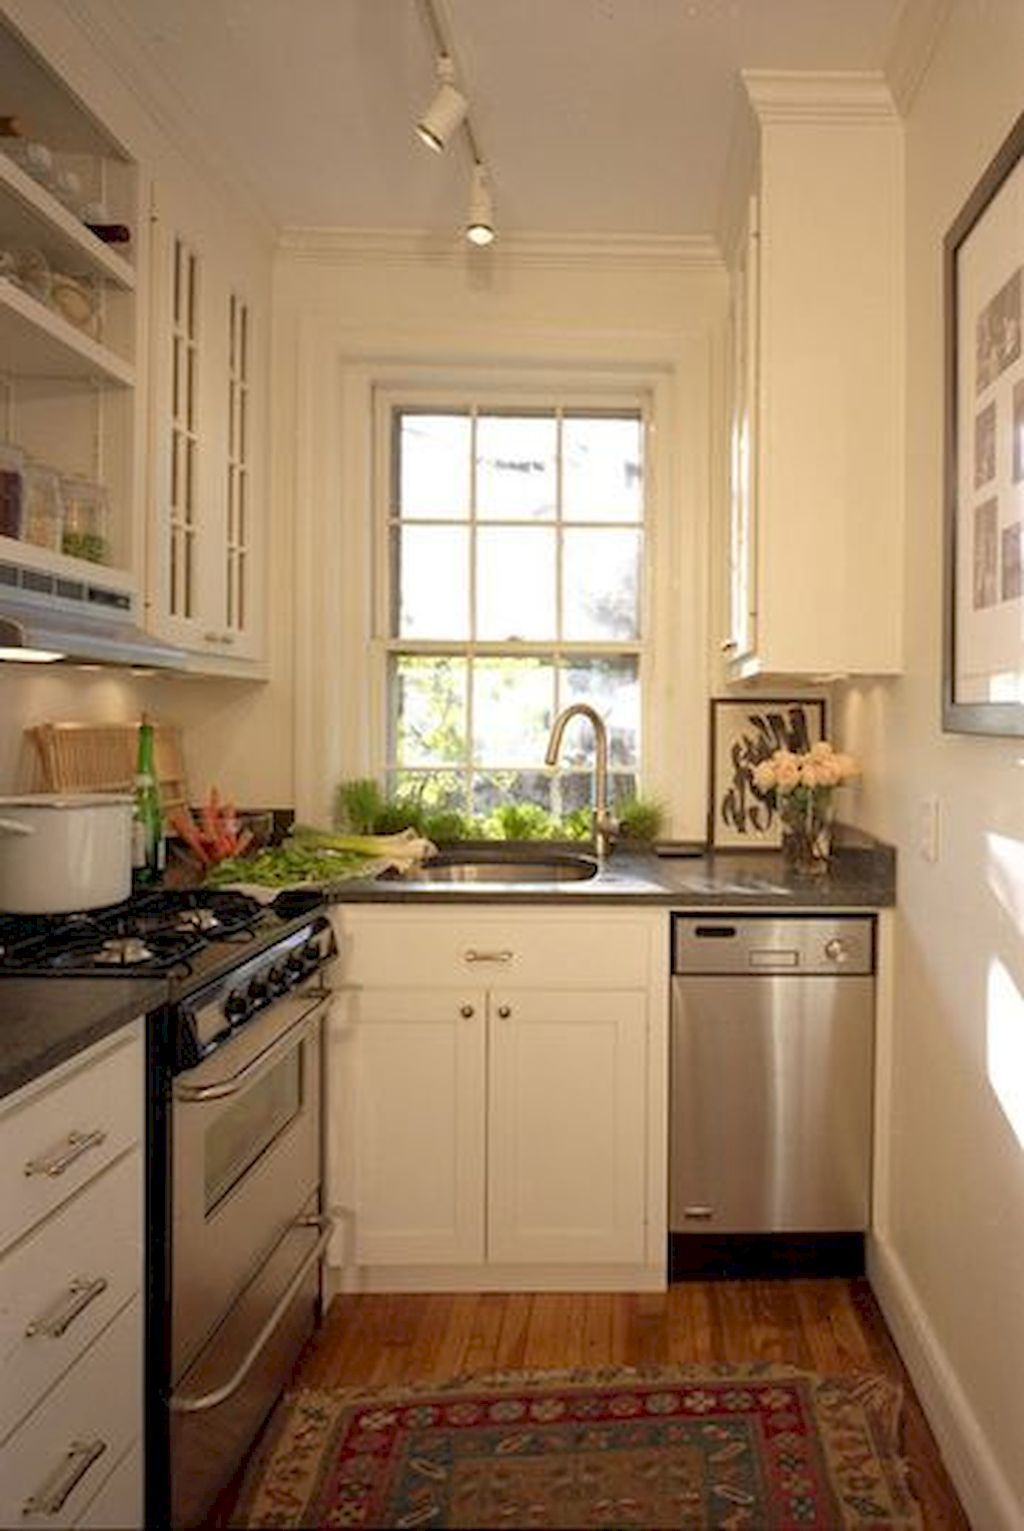 Kitchen Plan And Design For Small Room (181)